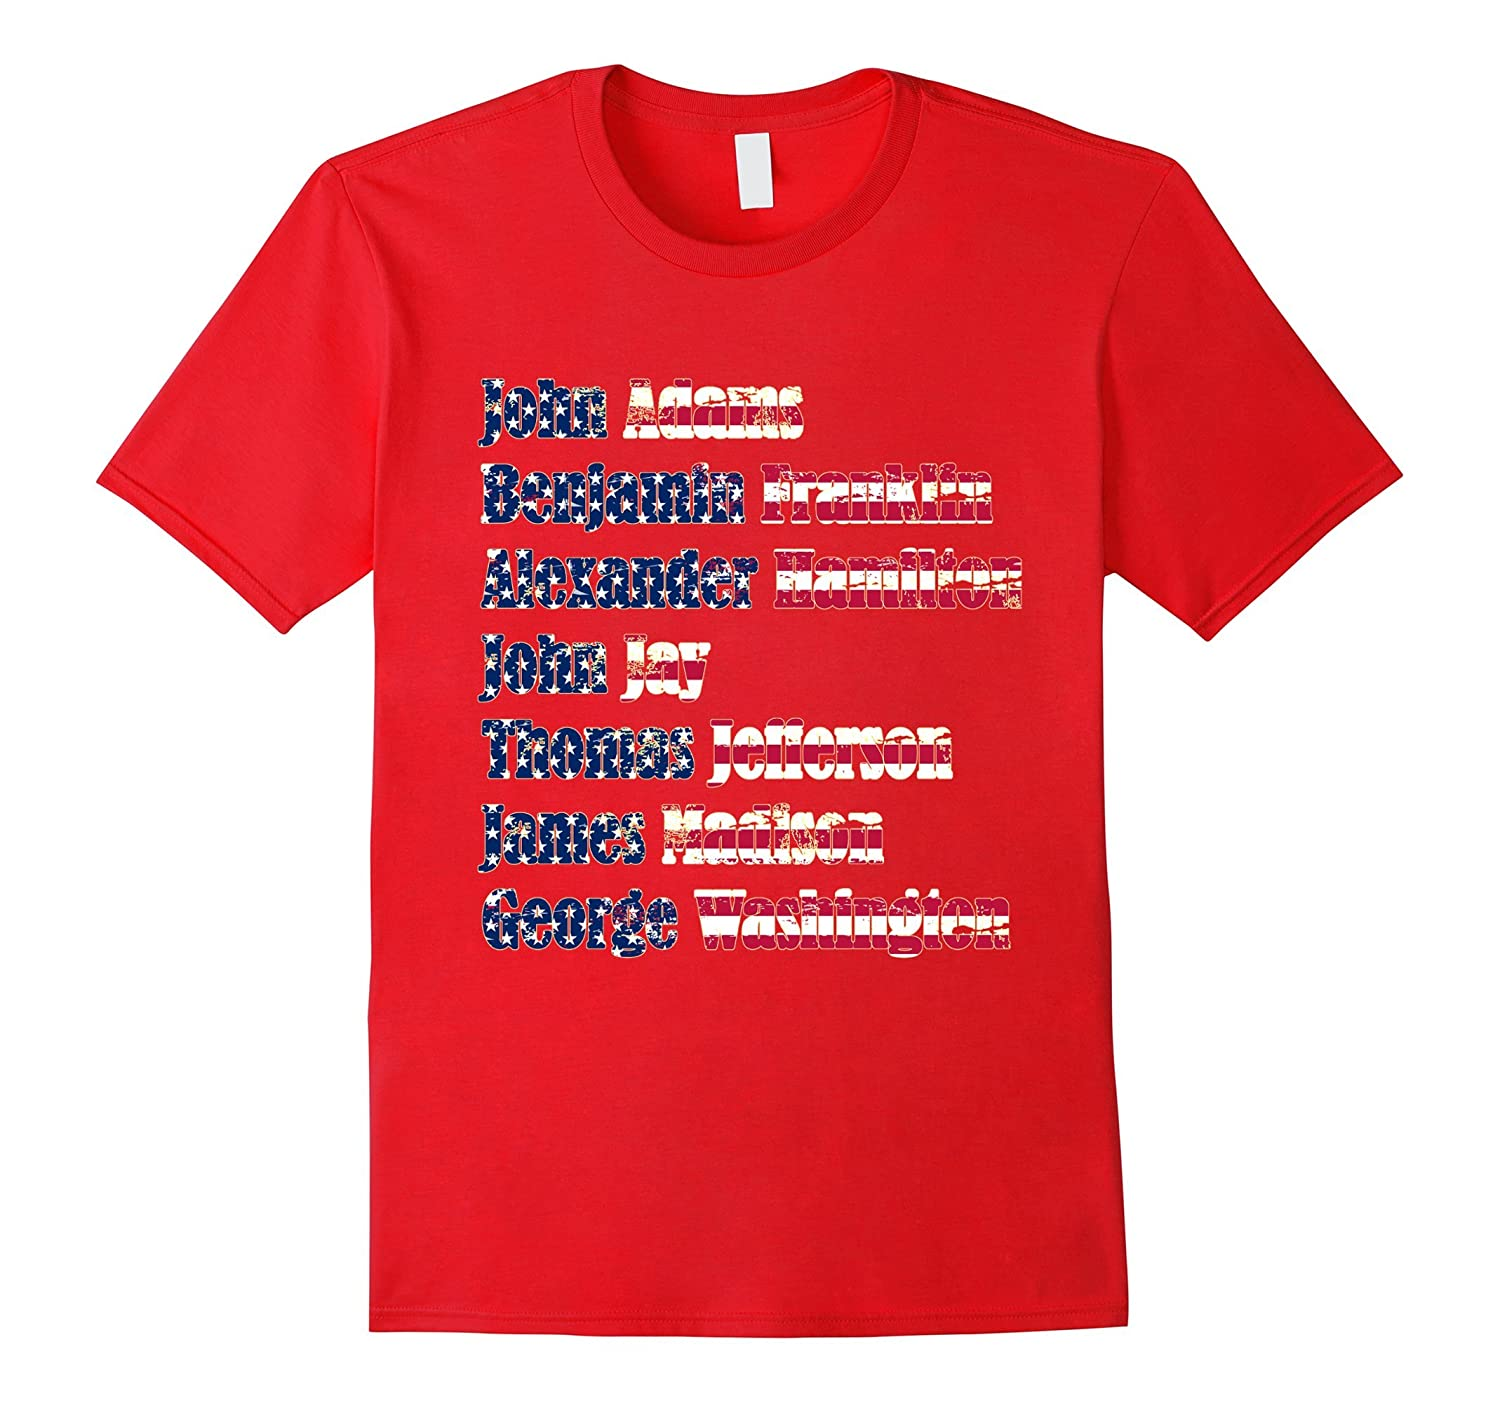 7 Founding Fathers of the US vintage American flag tee shirt